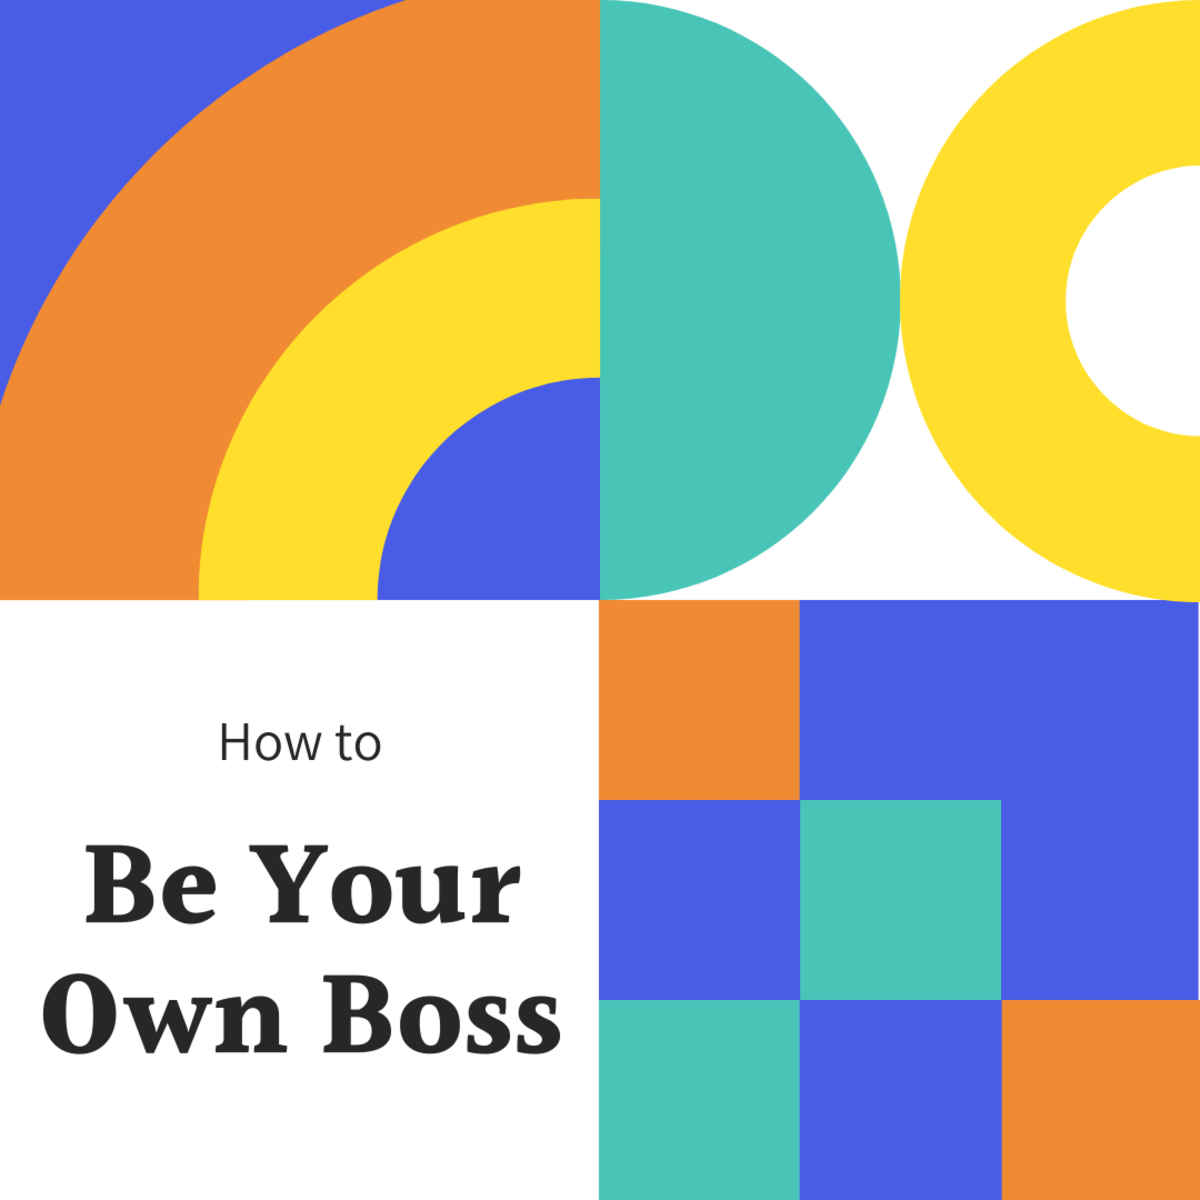 Learn how to be your own boss and use your time productively.